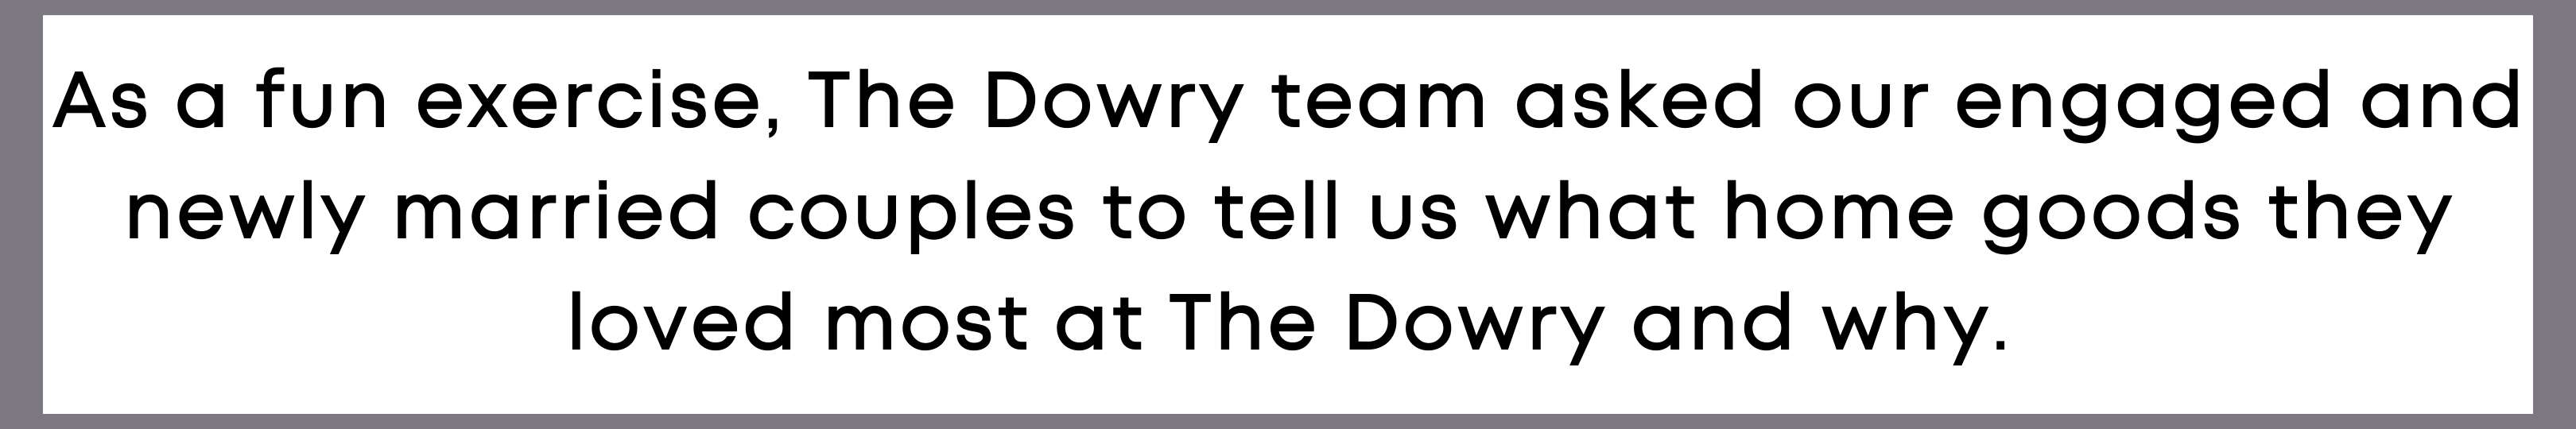 As a fun exercise, The Dowry team asked our engaged and newly married couples to tell us what home goods they loved most at The Dowry and why.